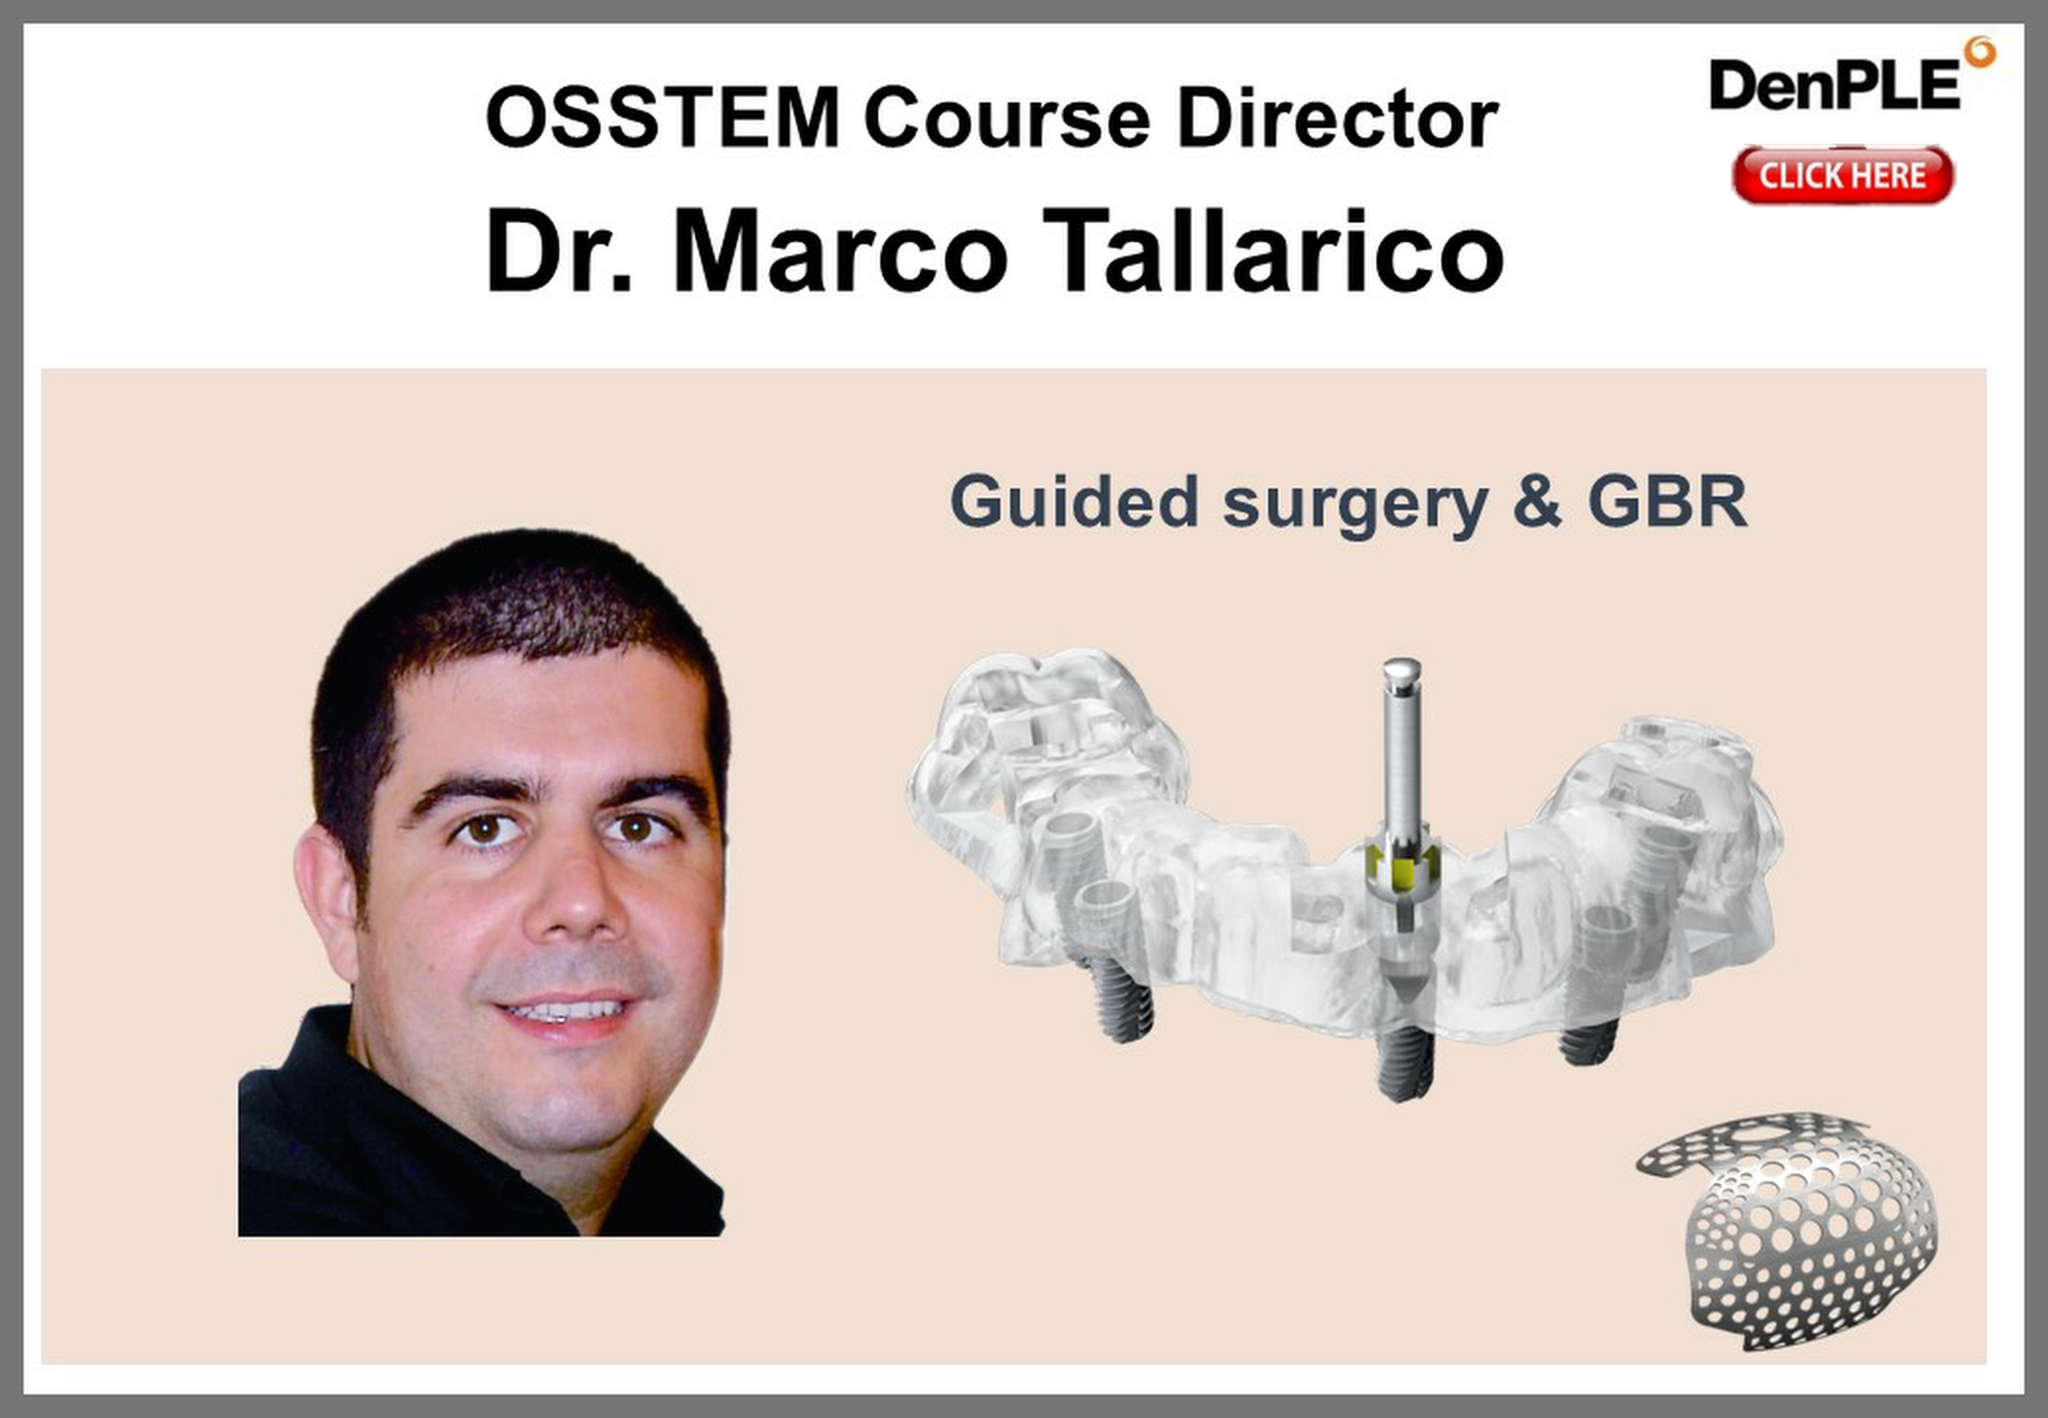 Guided Surgery & GBR Dr. M Tallarico